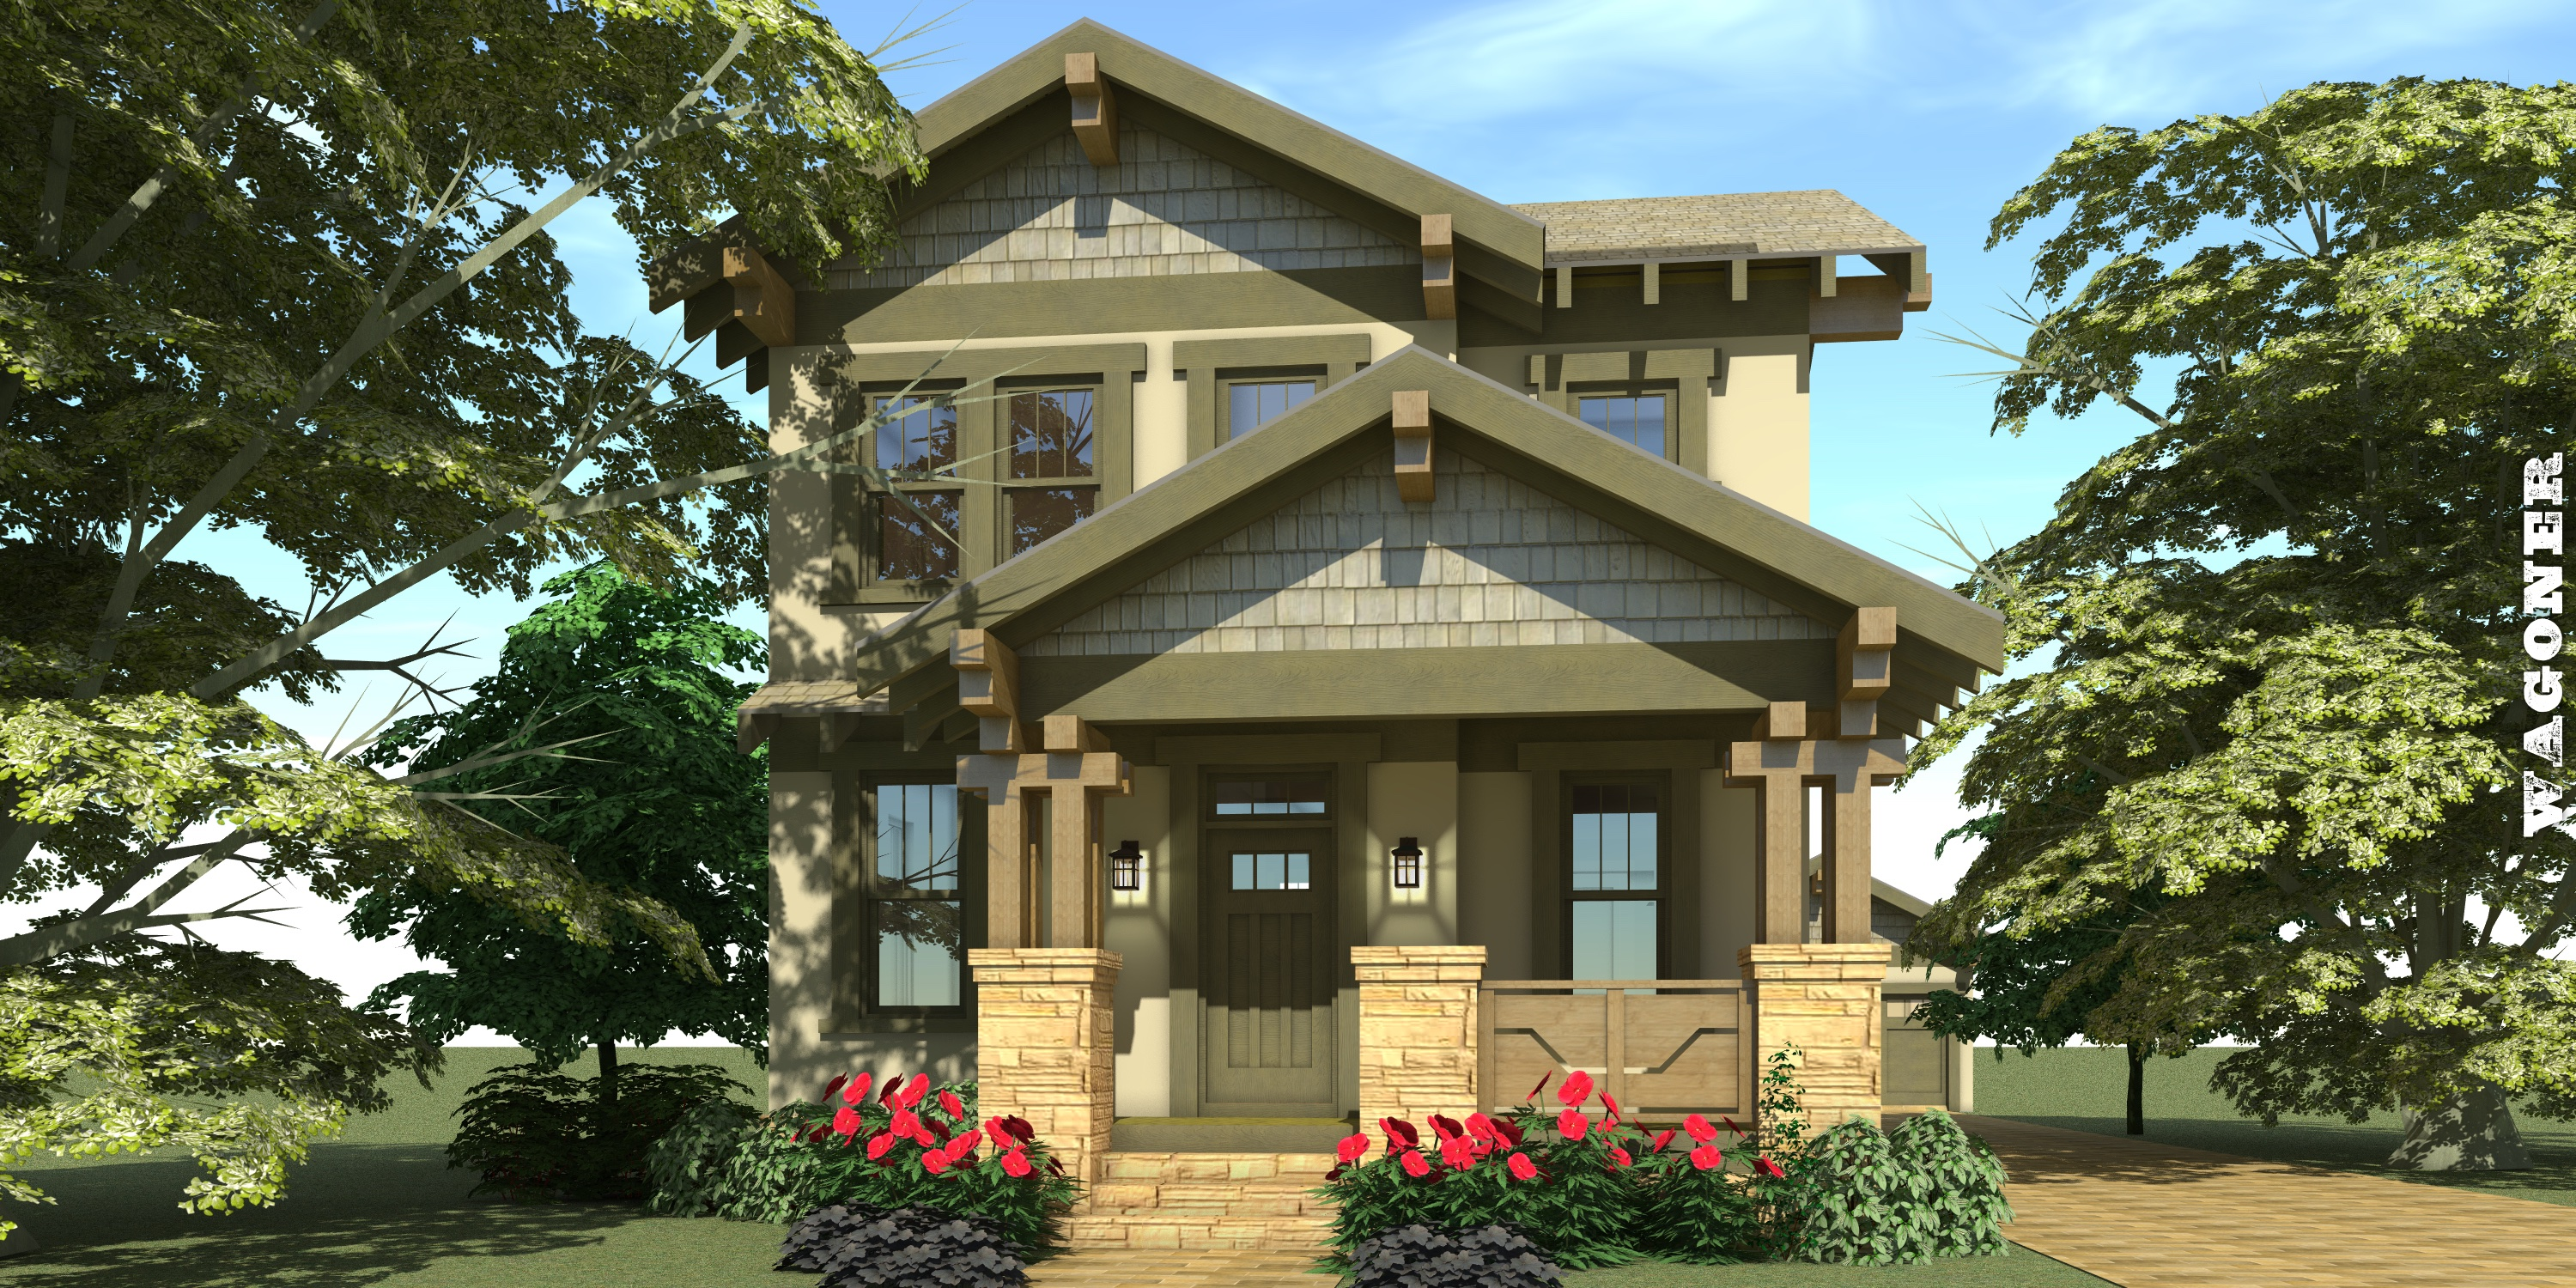 Wagoner House Plan by Tyree House Plans